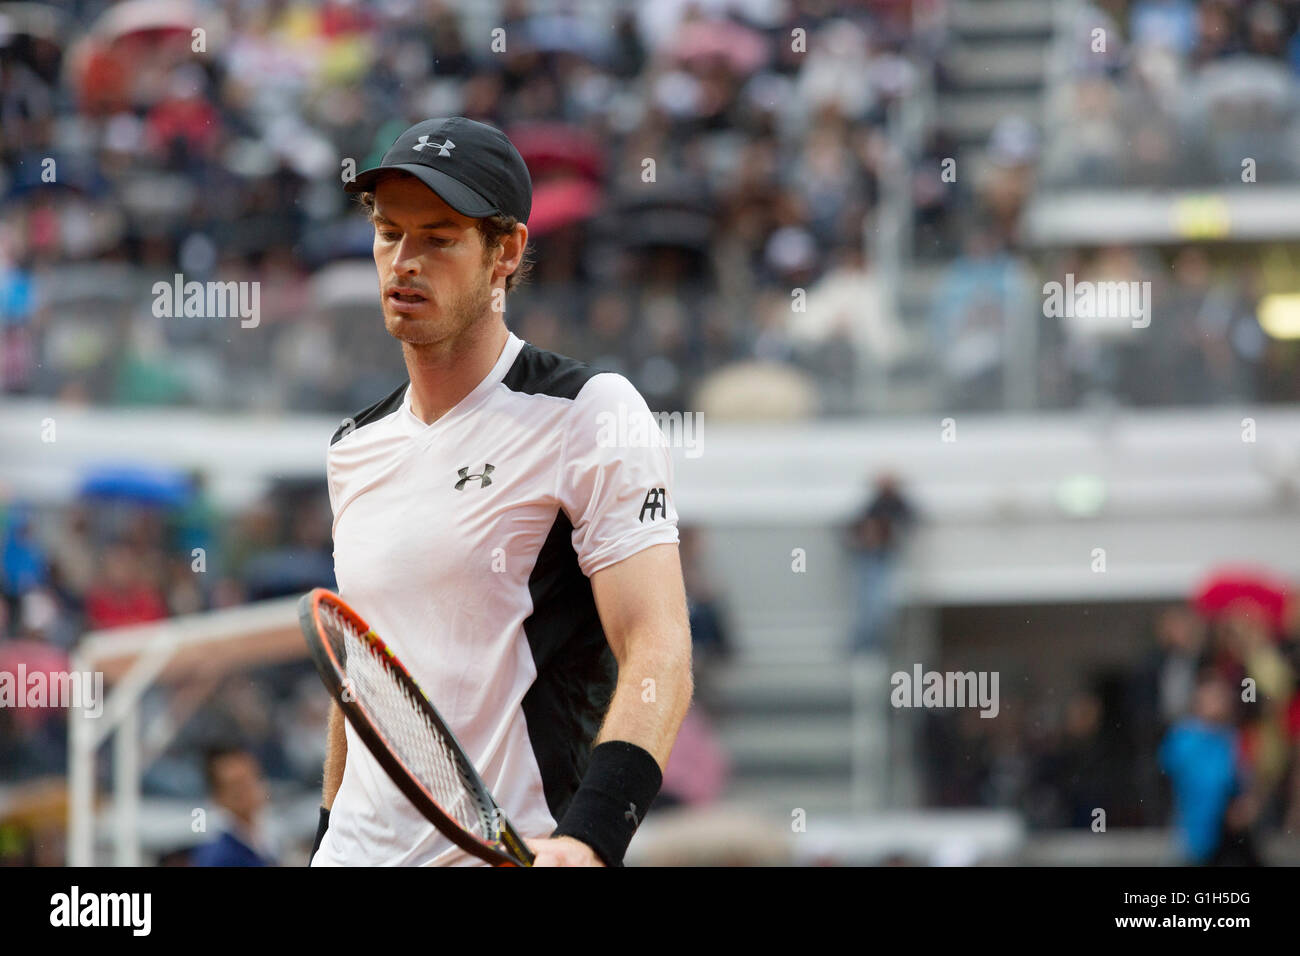 15th May, 2016. Andy Murray playing in the men's tennis final against Novak Djokovic in the BNL Internazionali, - Stock Image